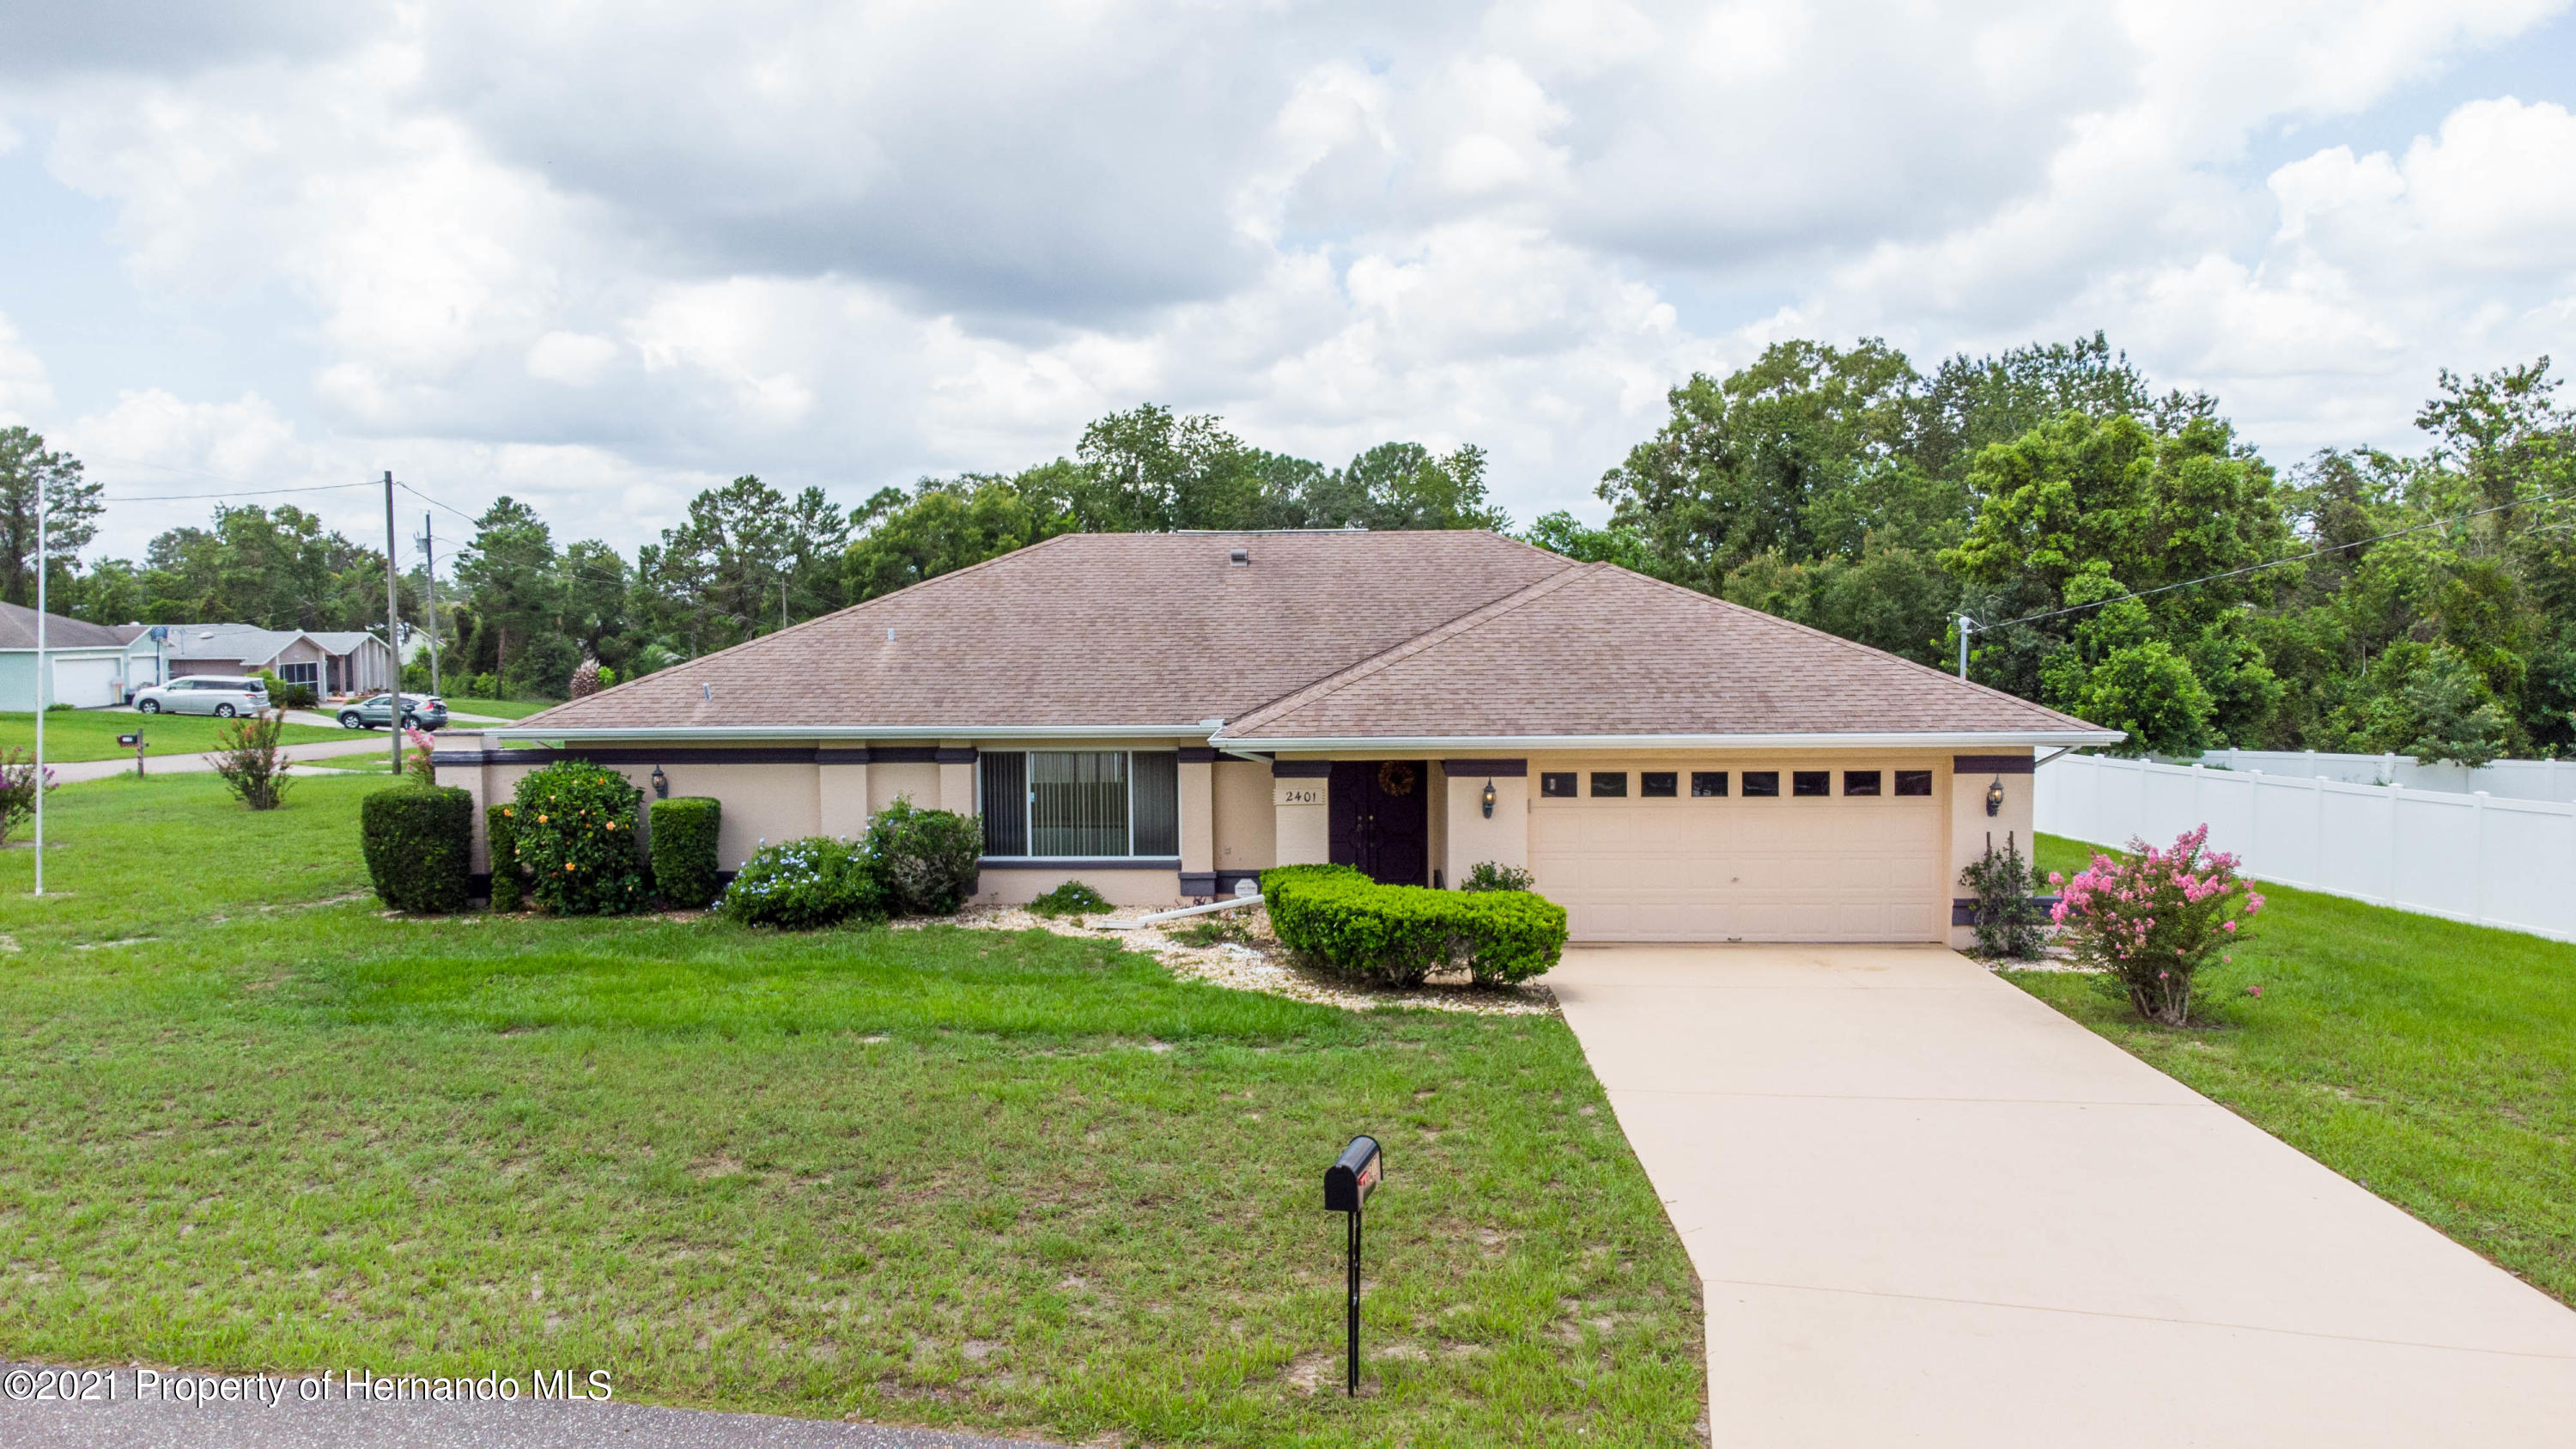 Details for 2401 Whitewood Avenue, Spring Hill, FL 34609